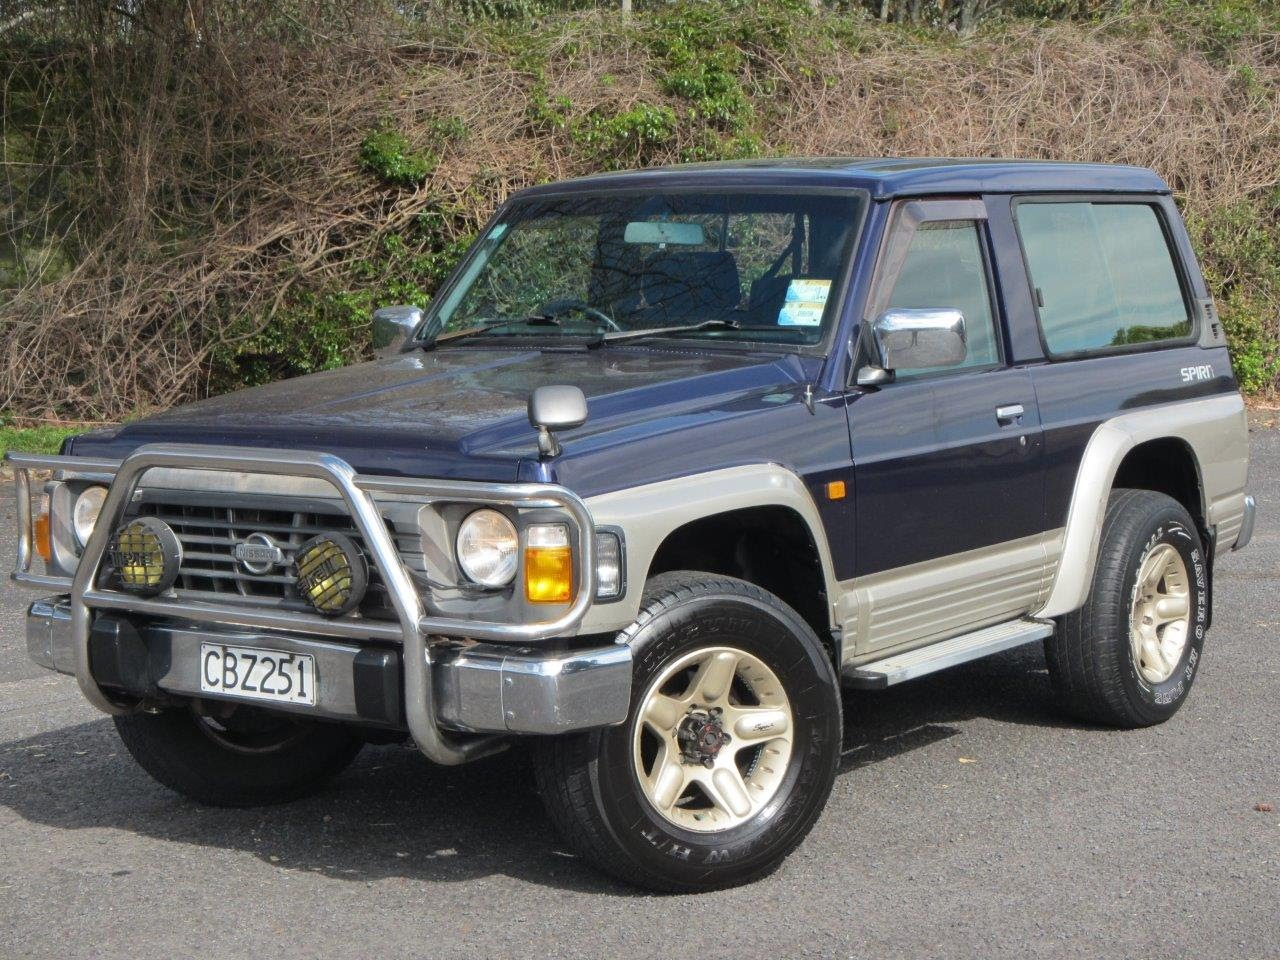 Nissan Safari IV (Y60) 1989 - 1997 SUV 5 door #1